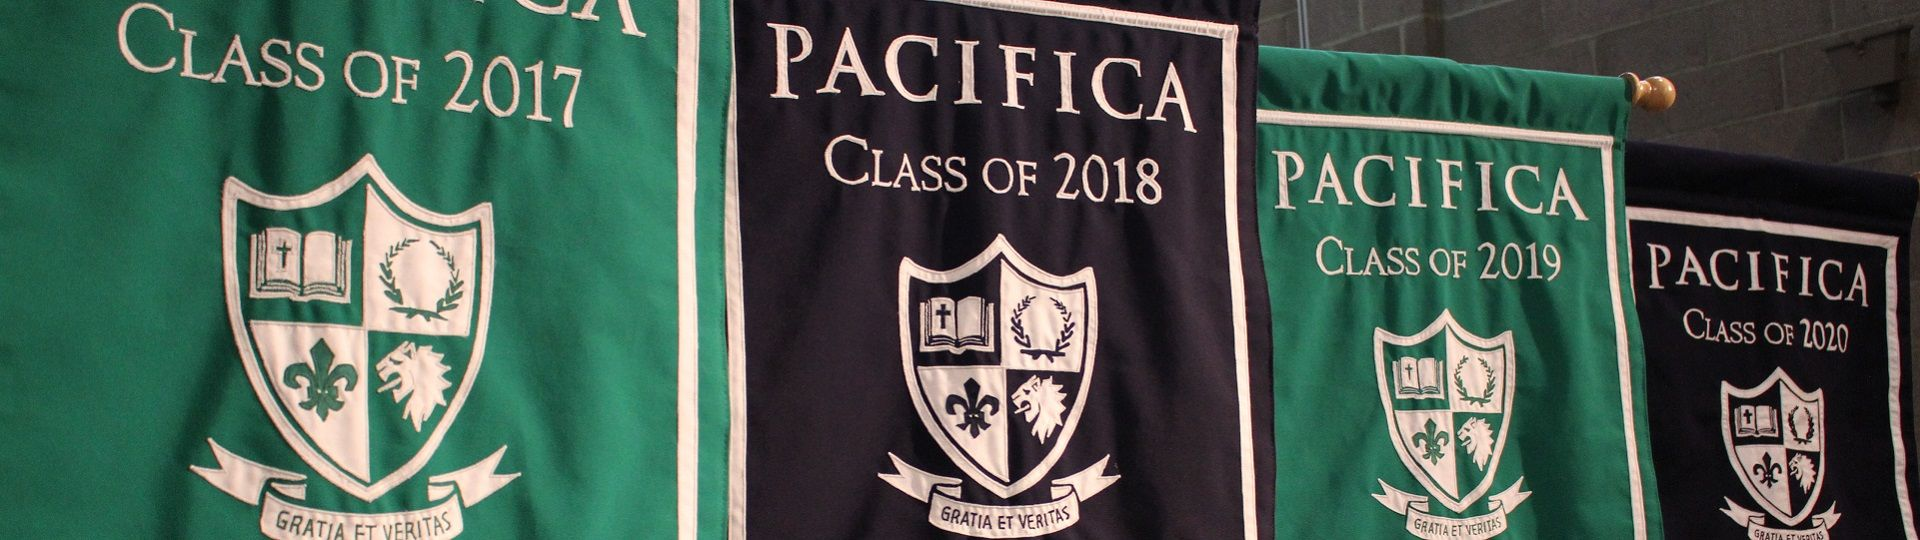 Pacifica Christian High School | Overview